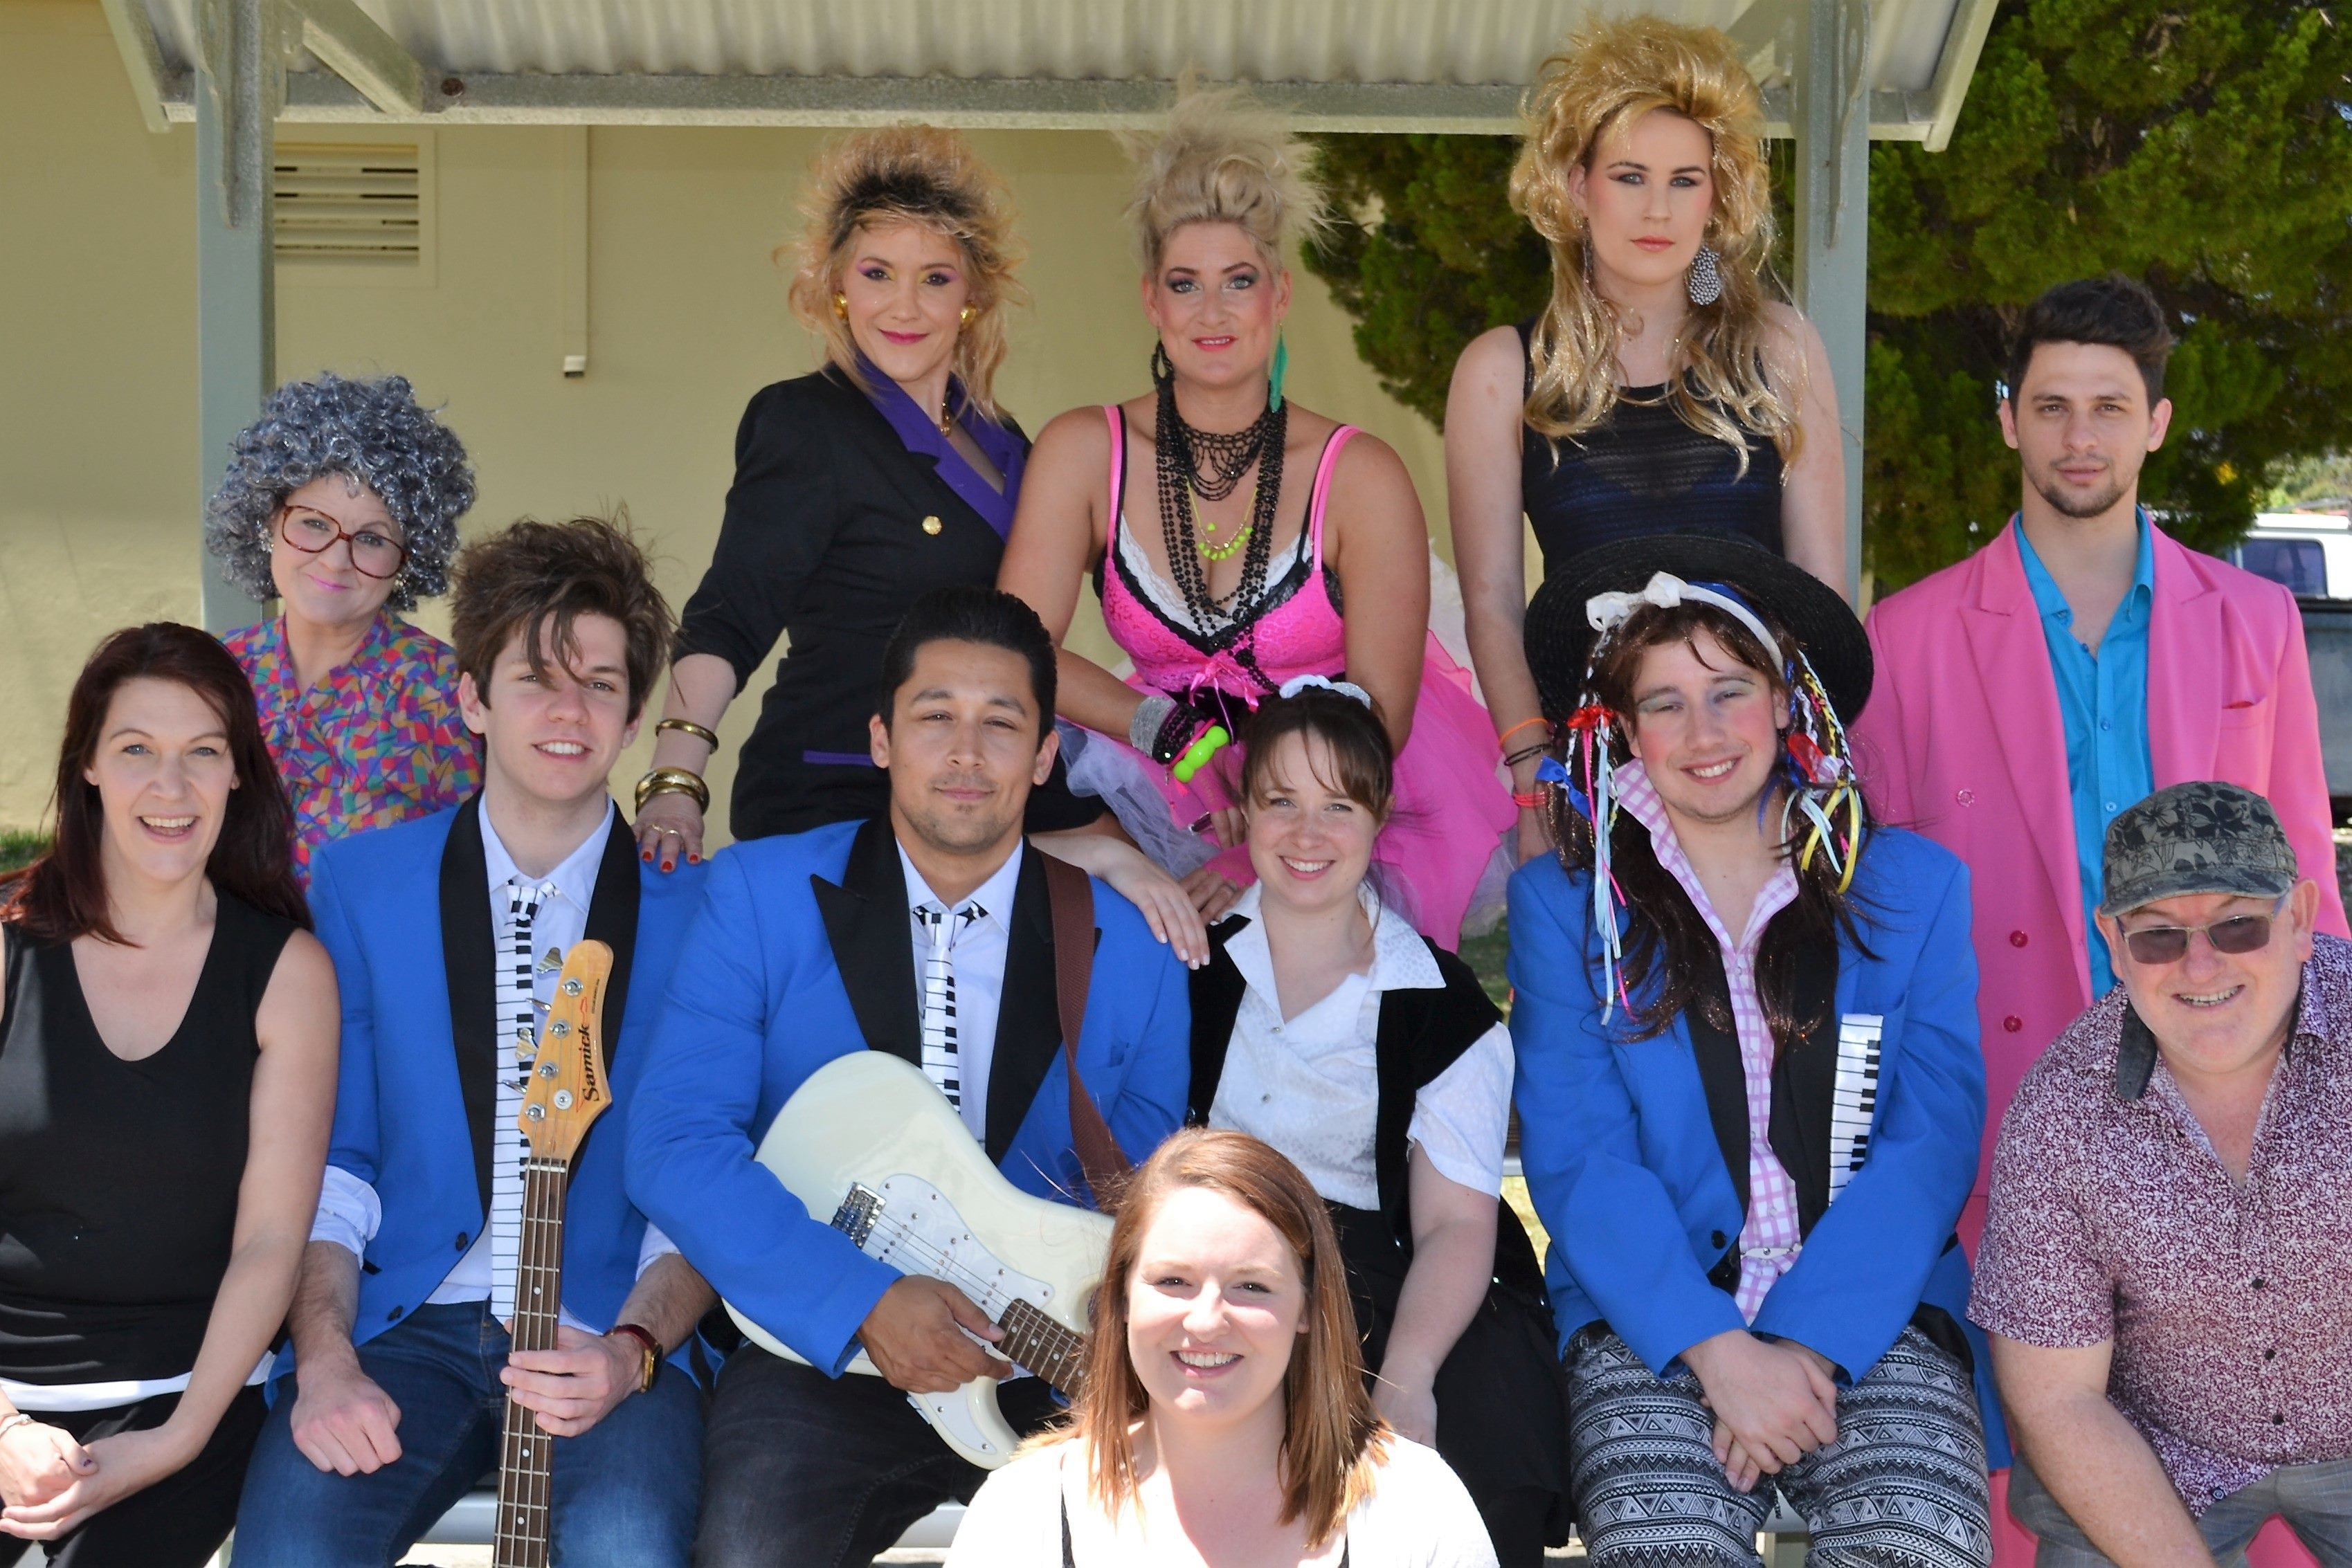 The Wedding Singer at Limelight Theatre - Perth